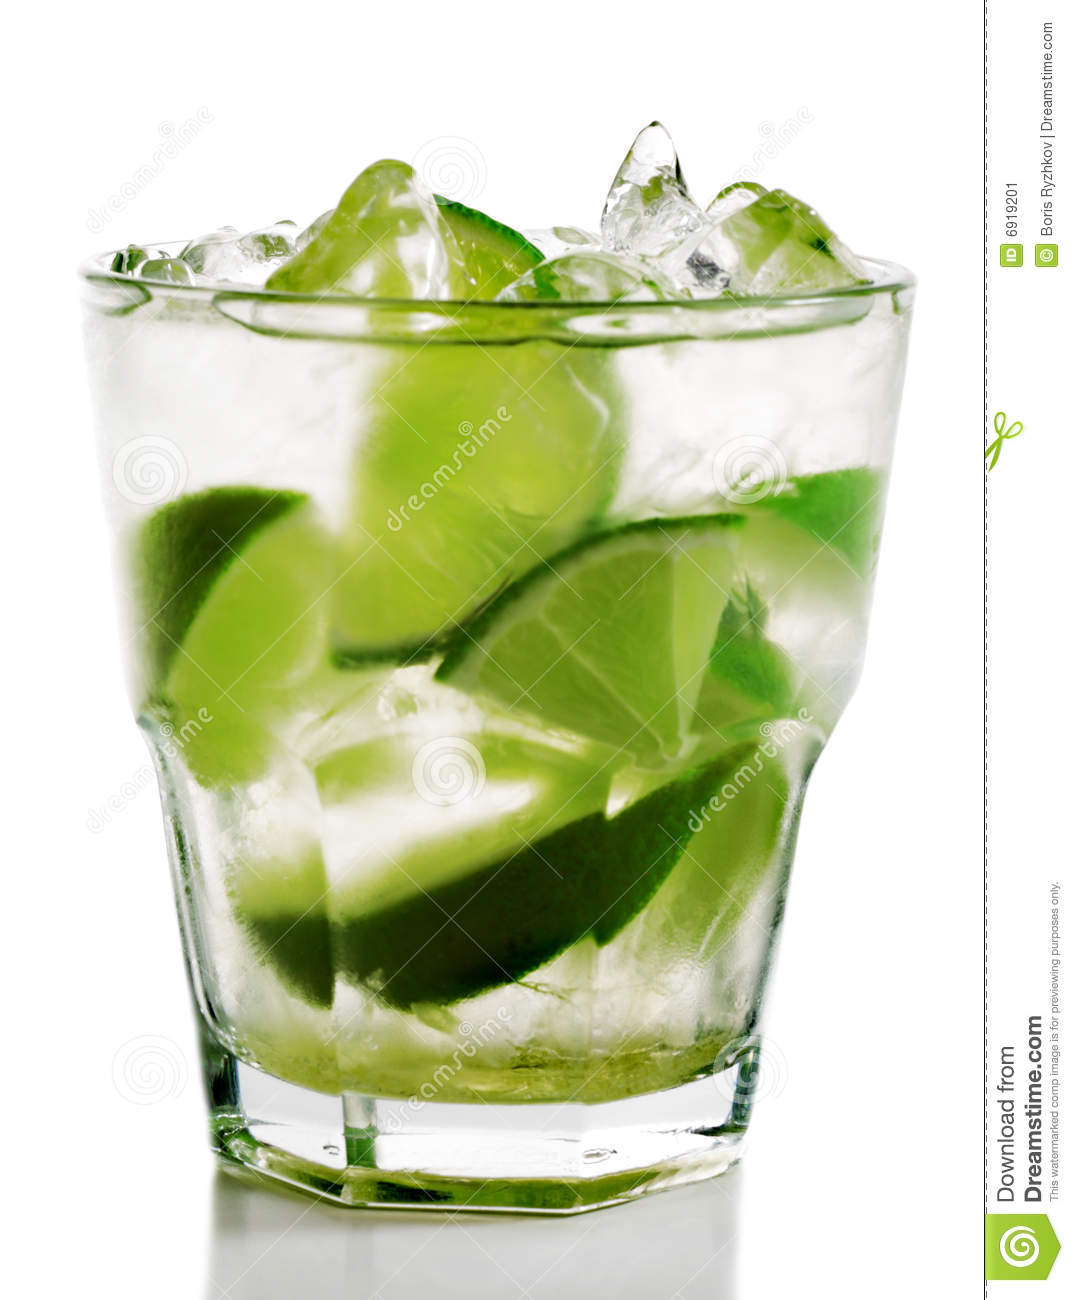 Caipirinha cocktail wallpaper  Cocktail - Caipirinha Stockbild - Bild: 6919201